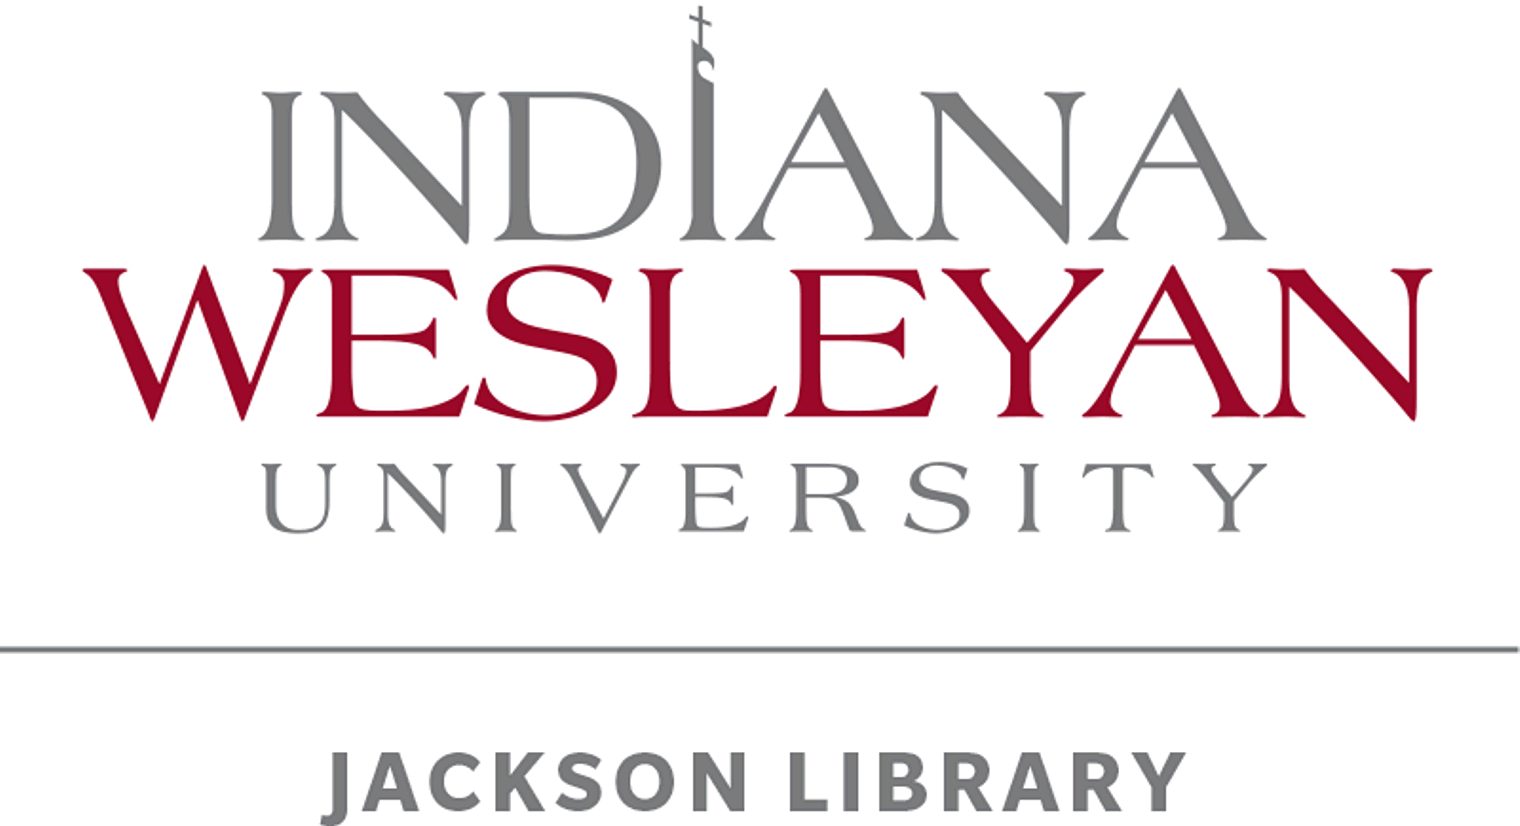 Indiana Wesleyan University - Jackson Library